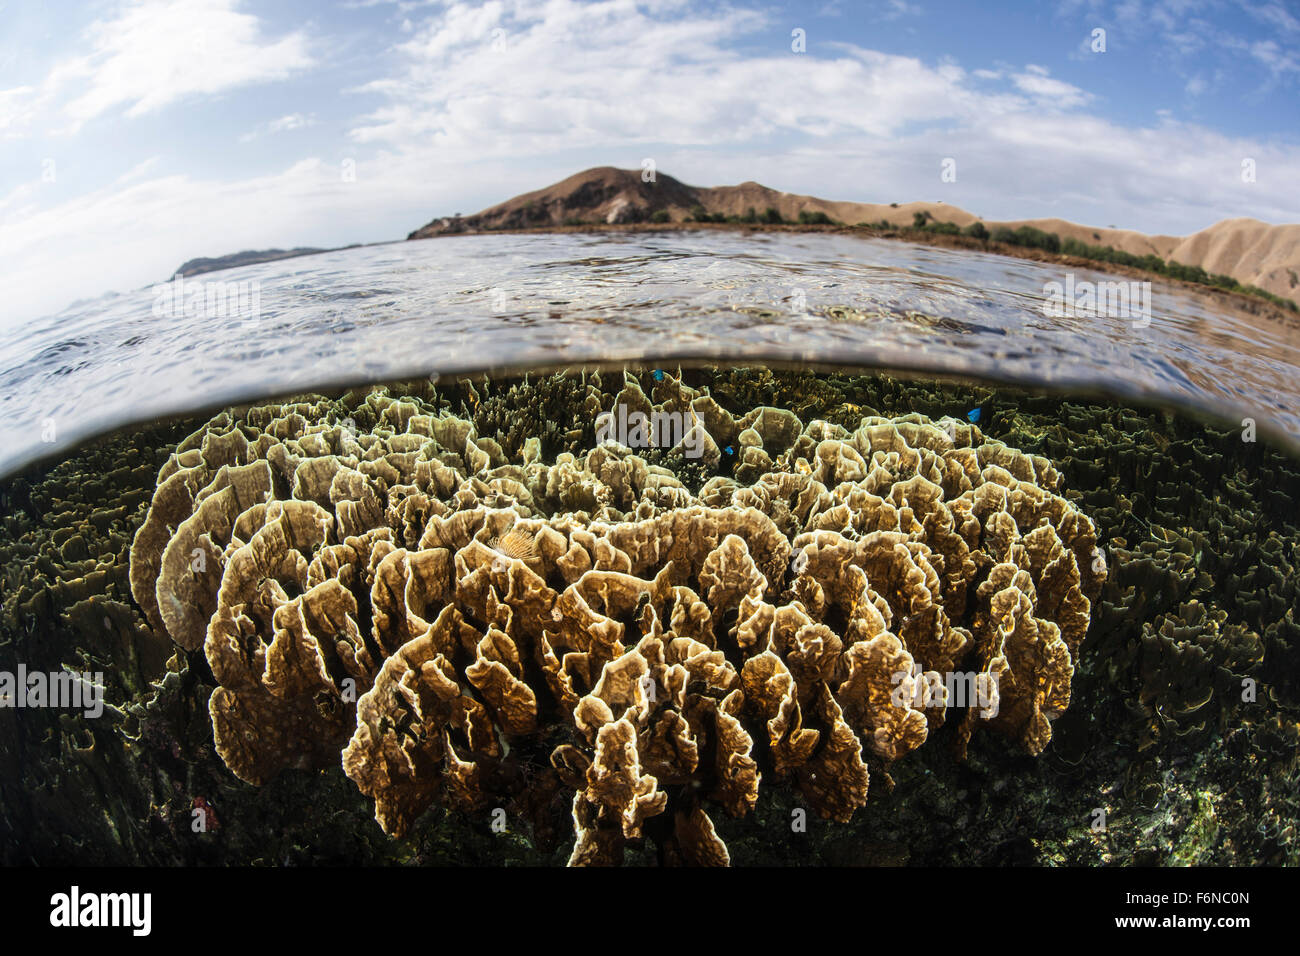 A fire coral colony grows in extremely shallow water in Komodo National Park, Indonesia. This part of the Coral - Stock Image